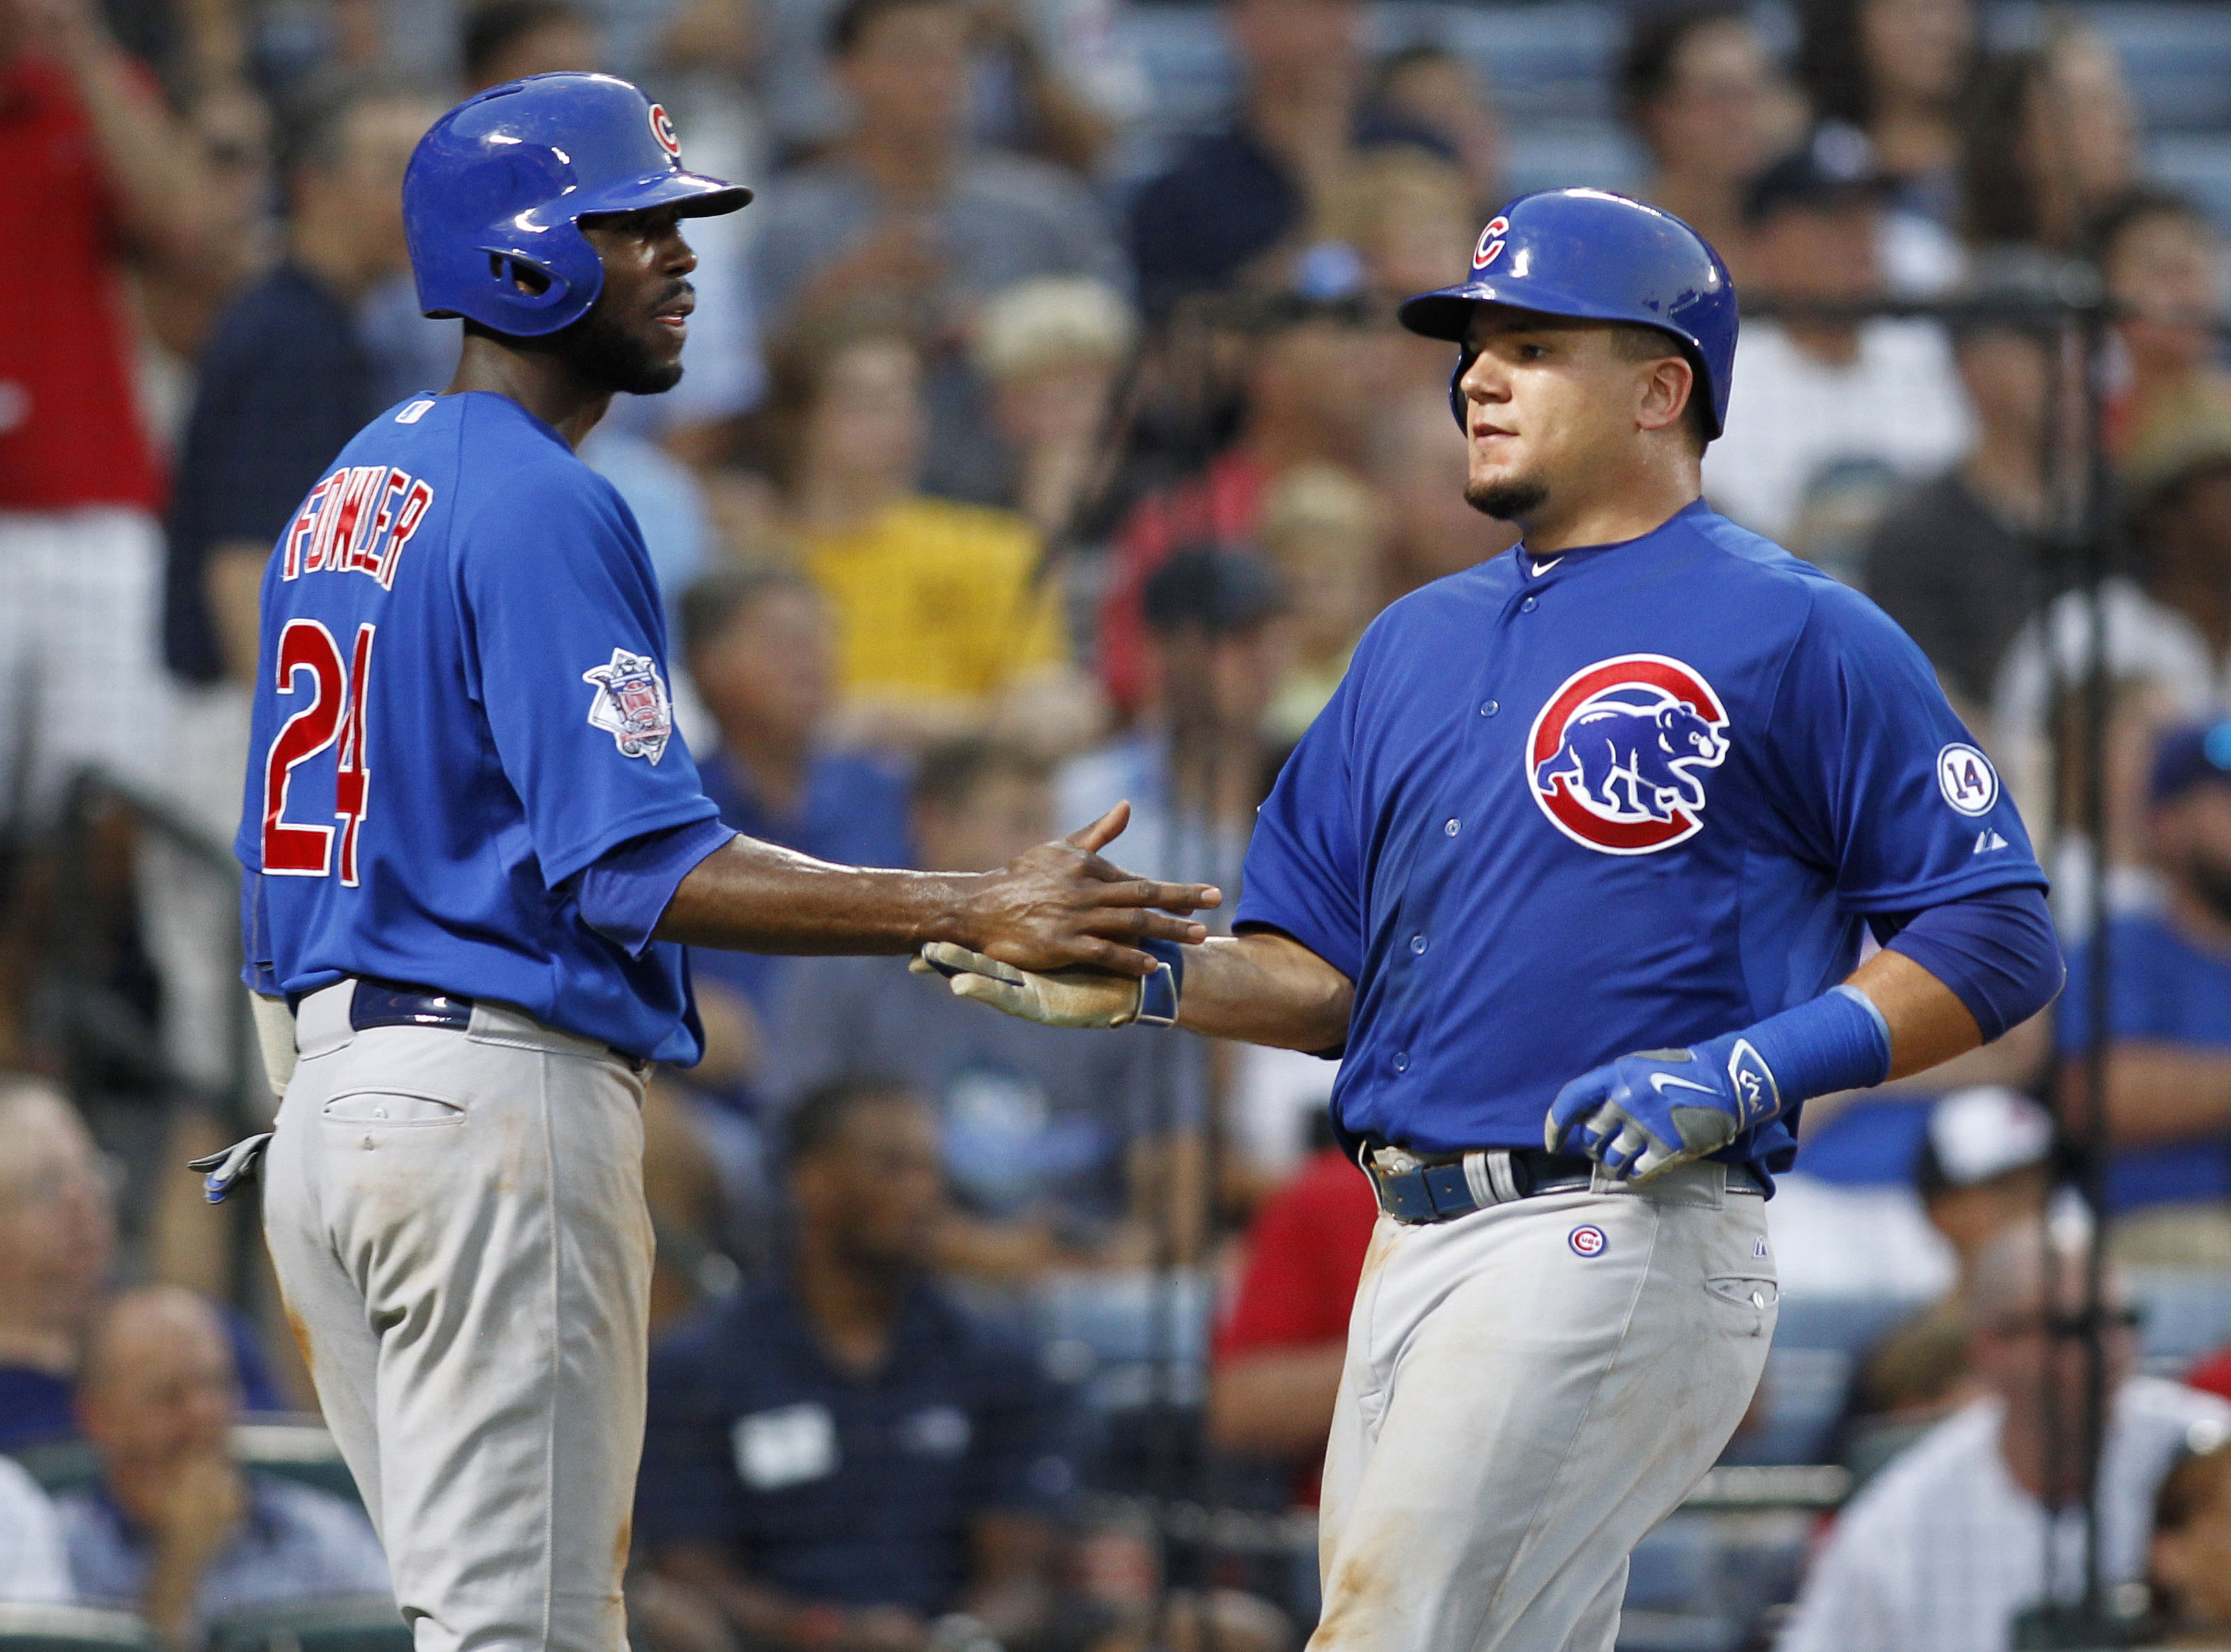 Chicago Cubs' Dexter Fowler (24) and Kyle Schwarber celebrate after scoring on a Jorge Soler single during the third inning of a baseball game against the Atlanta Braves, Friday, July 17, 2015, in Atlanta. (AP Photo/Brett Davis)